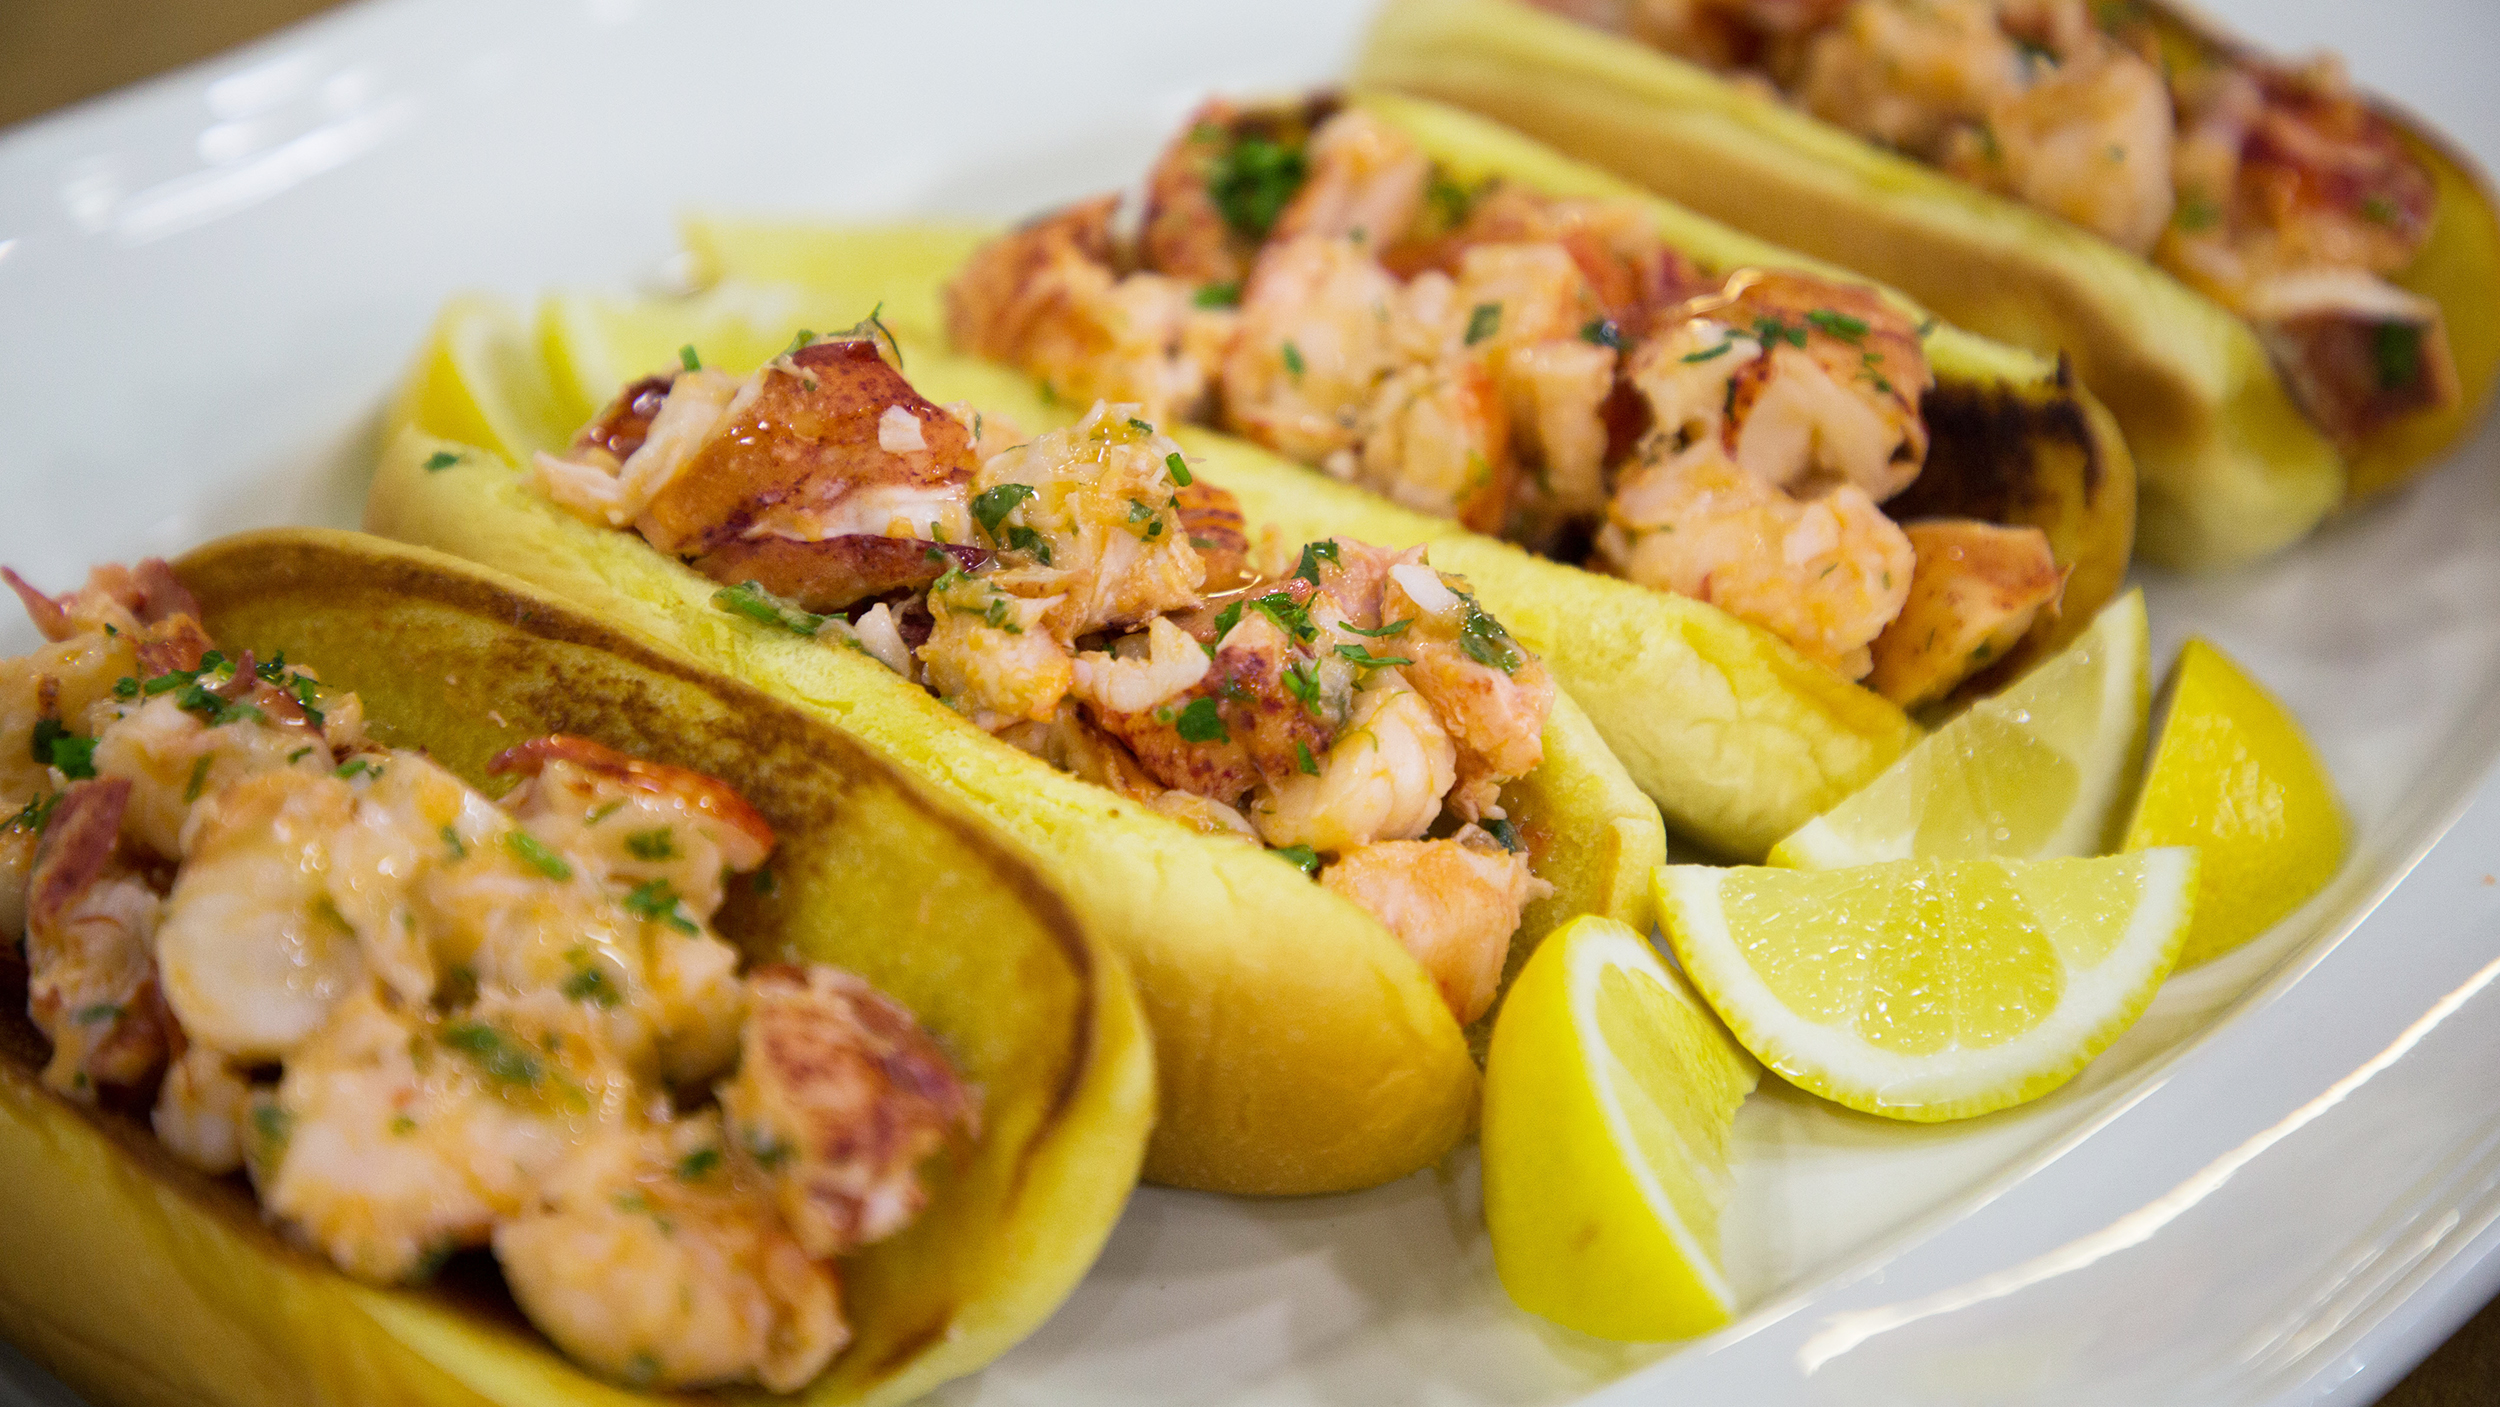 Connecticut-Style Lobster Rolls - TODAY.com